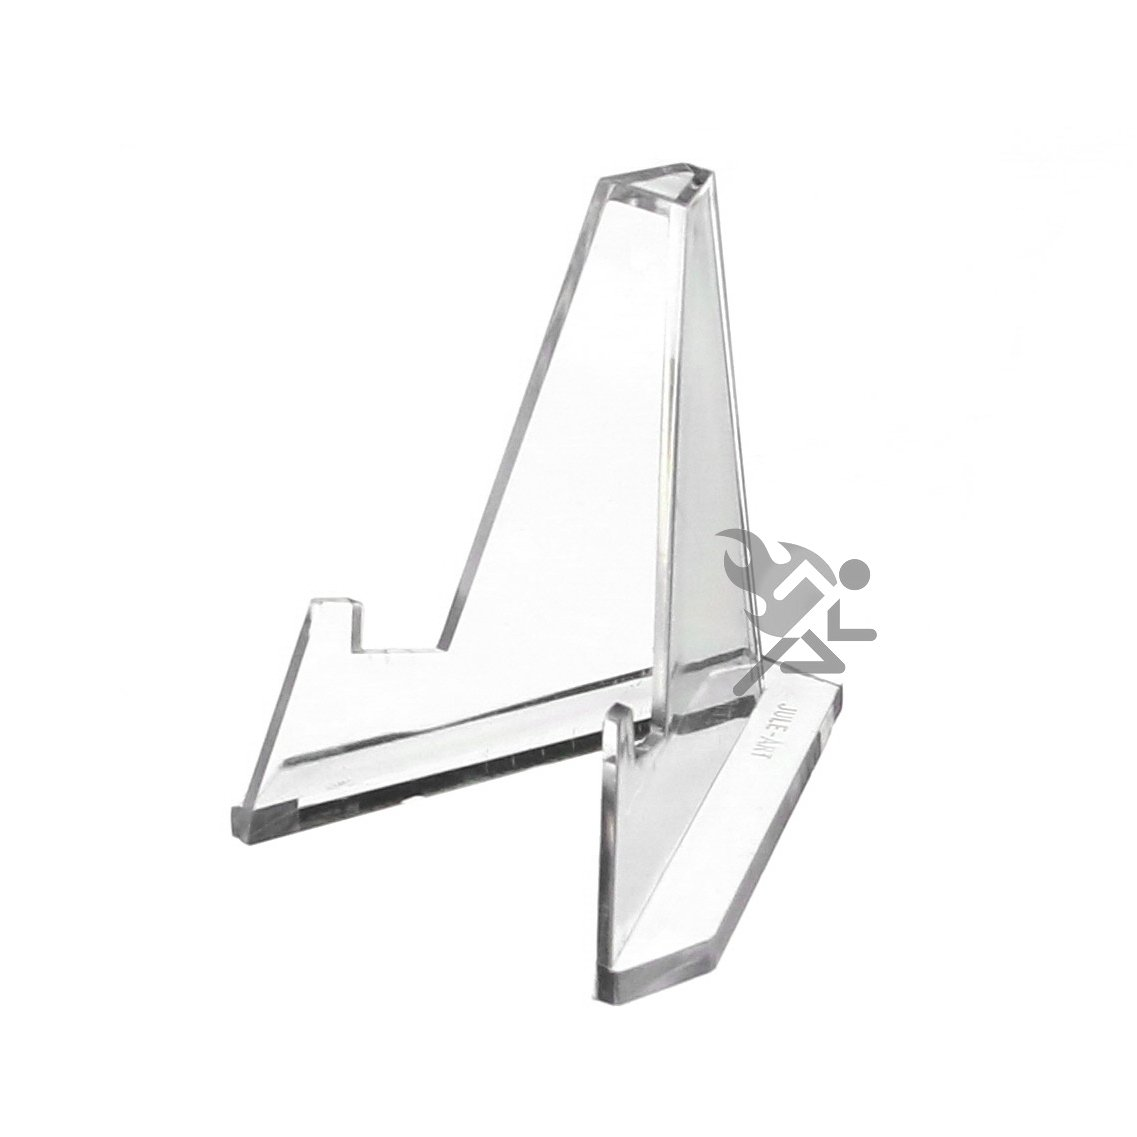 Set of 12 Mini Acrylic Easel Stands, 2.25H 2.25H Display Stands